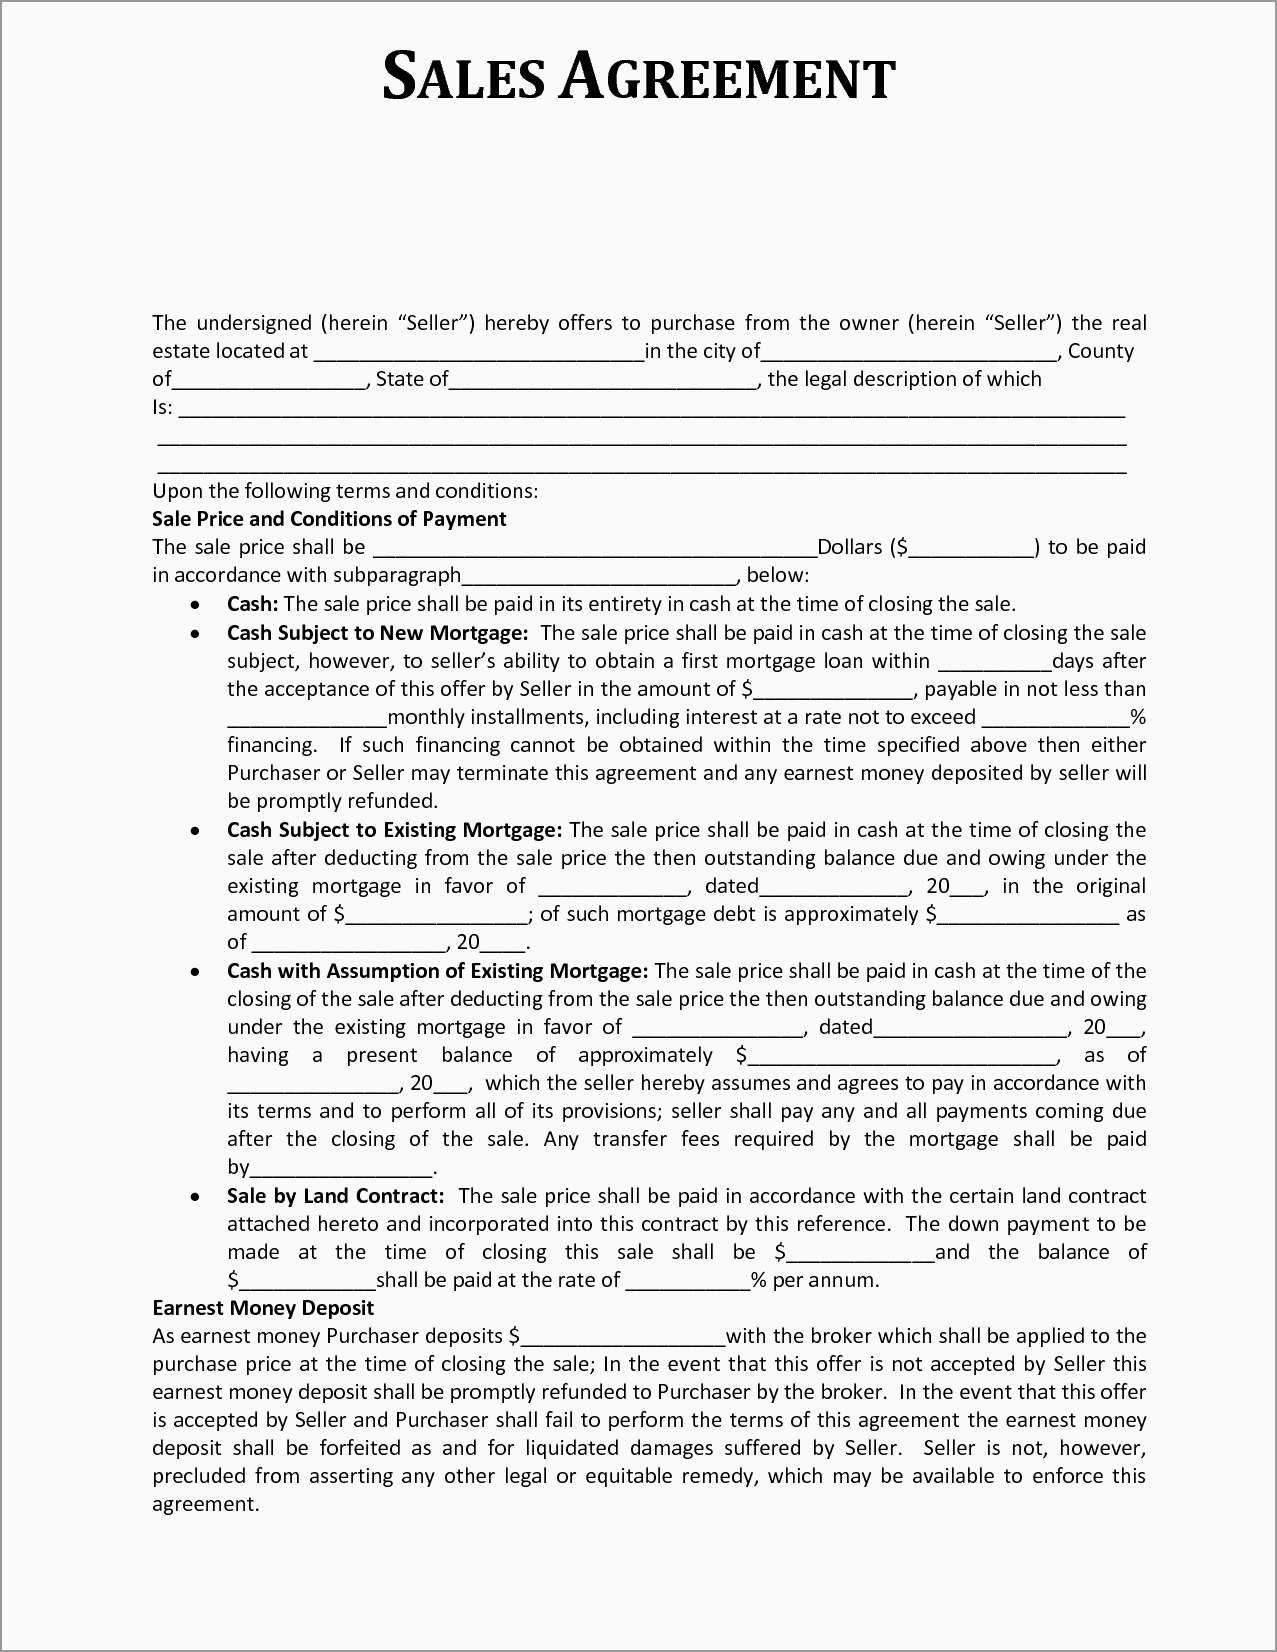 Sales Commission Contract Template Free Unique  Sales Agreement For Free Commission Sales Agreement Template